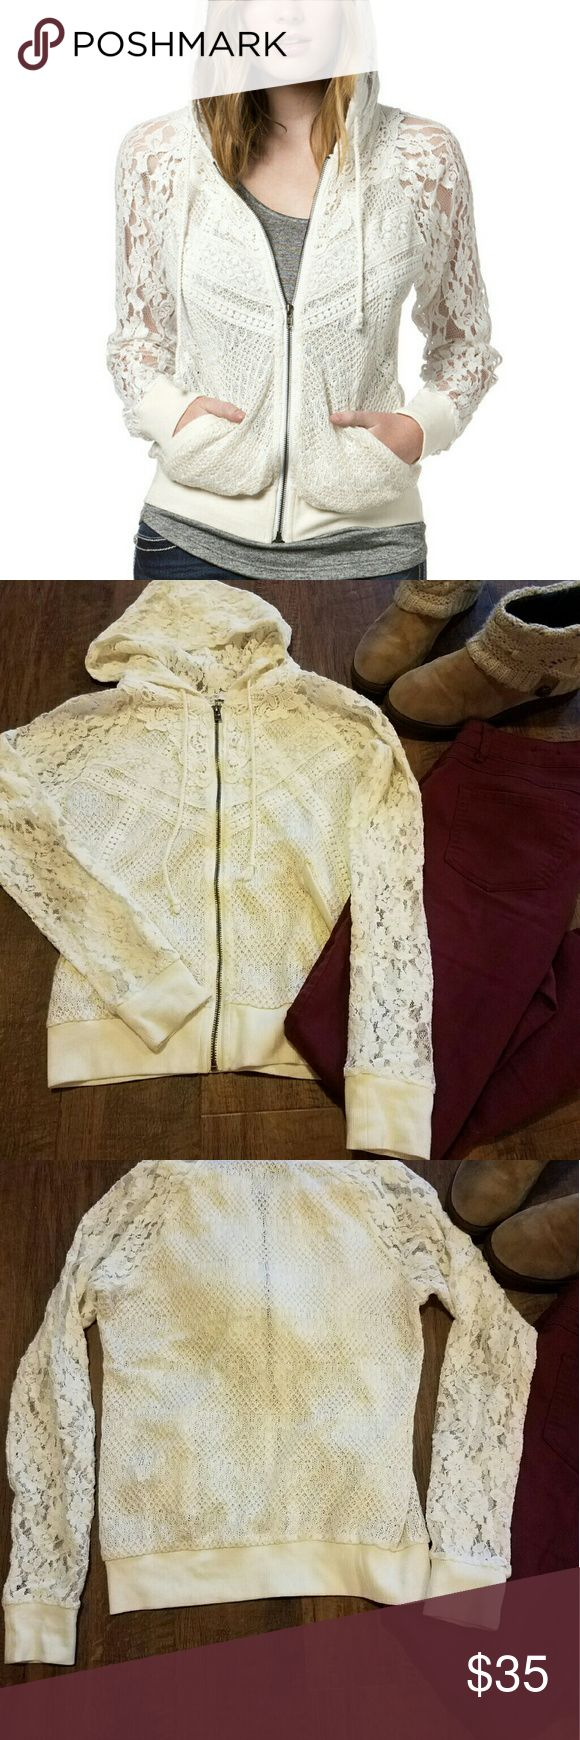 "Miss Me Star Gazer Lace Hoodie Gorgeous crocheted zip-up hoodie with many different patterns of lace blended together. Cream with golden thread interwoven. Sheer throughout, especially in the arms. Fitted at wrists and hips. Excellent condition--no snags or tears. Measures approximately 18"" armpit to armpit and is about 23"" long from top of shoulder to hem. 98% acrylic, 2% lurex. Contrast is 70% cotton, 20% acrylic, and 10% spandex. Miss Me Sweaters"